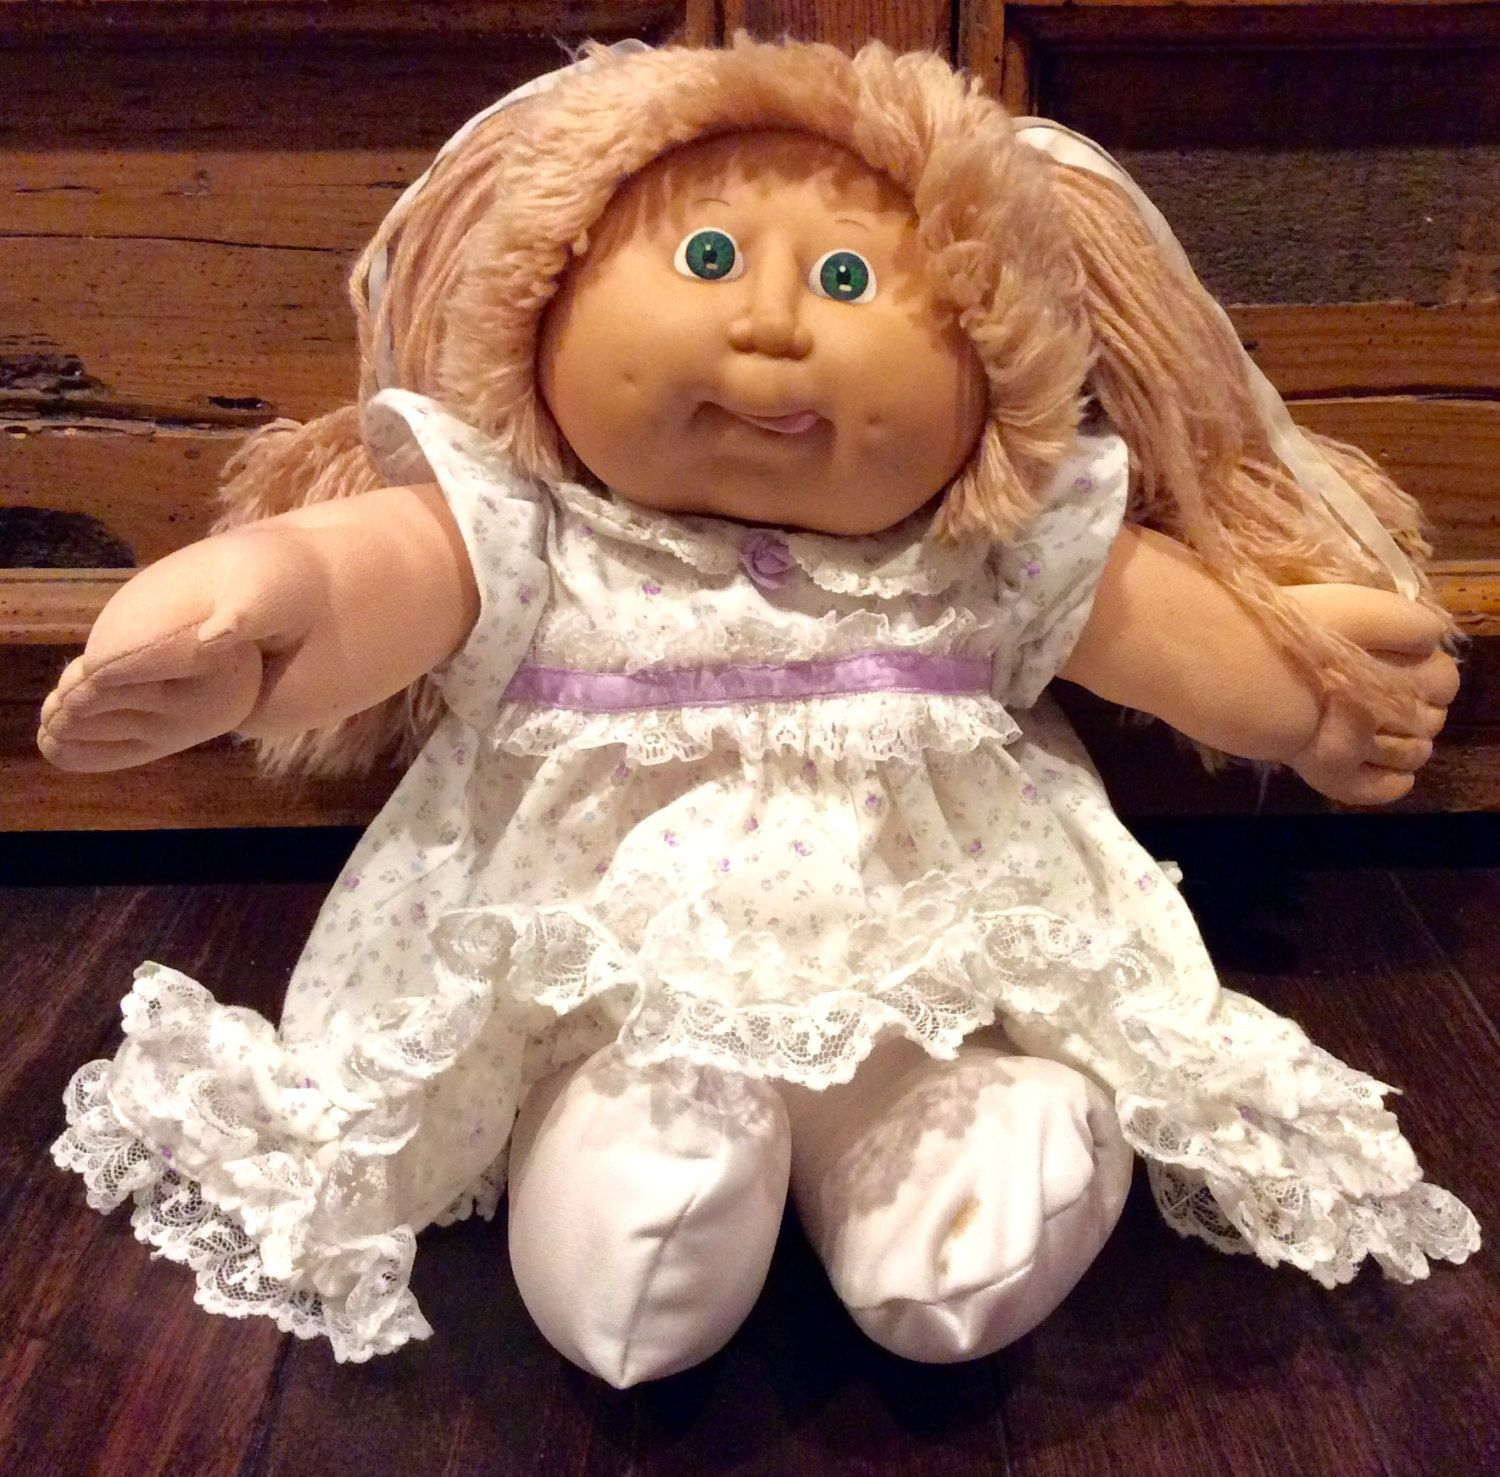 1986 Cabbage Patch Kids Doll With Her Tongue Sticking Out Vintage Coleco Cabbage Patch Kids Cabbage Patch Doll Girl Cpk Oaa 1980s Cpk Cabbage Patch Kids Dolls Child Doll Patch Kids